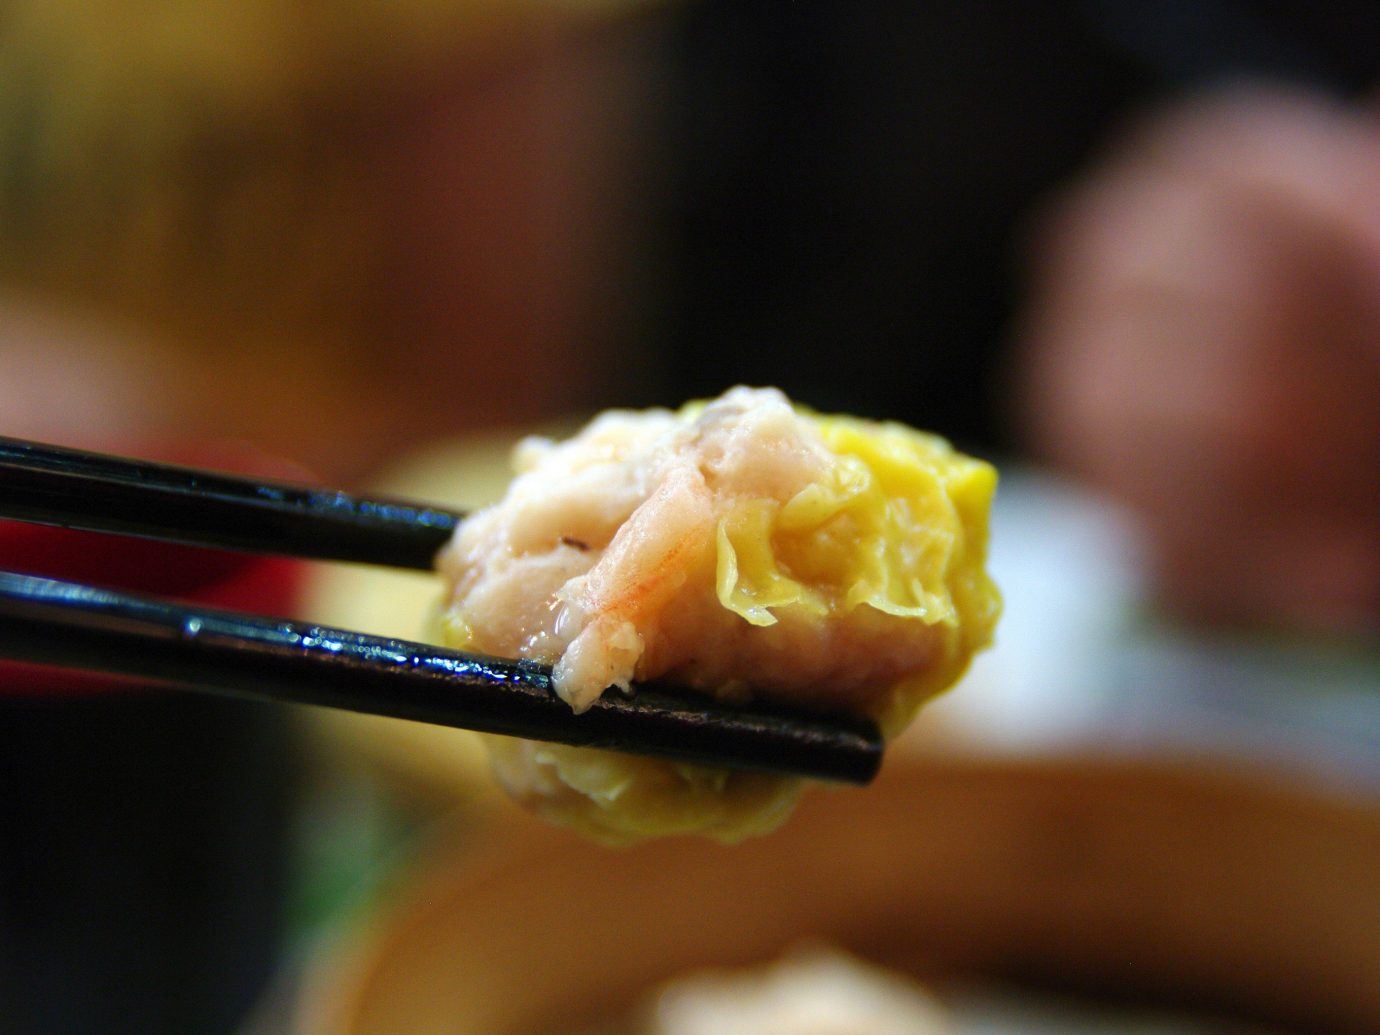 Food + Drink food dish cuisine indoor sushi asian food japanese cuisine meal hand macro photography chinese food sweetness dessert close